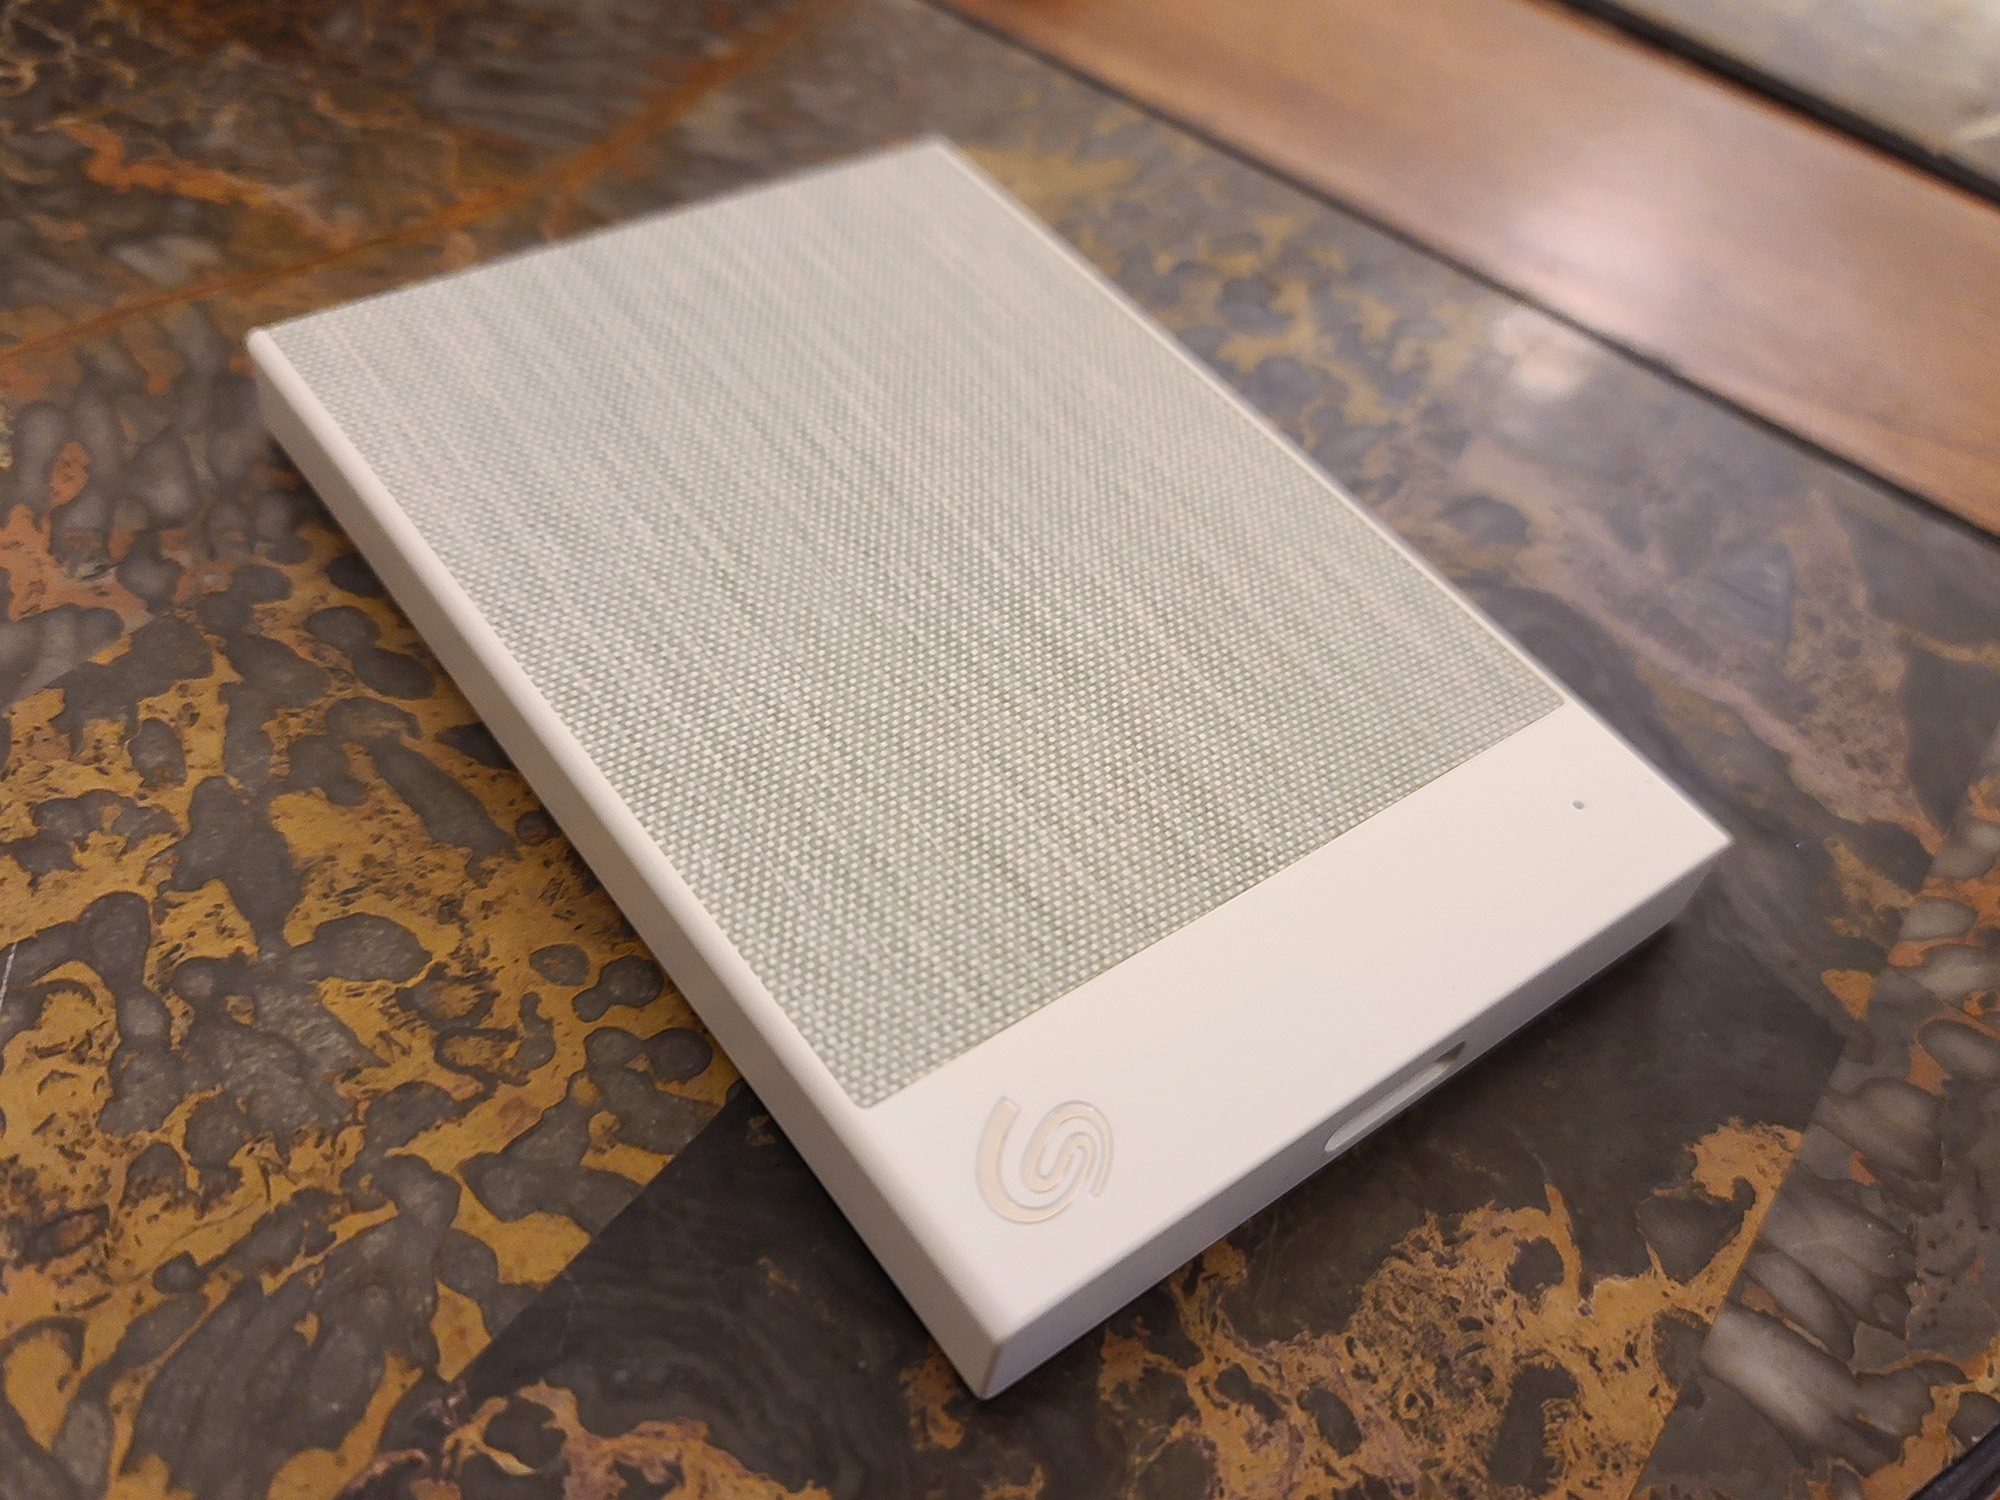 Best external hard drives: Seagate Backup Plus Ultra Touch (2TB)